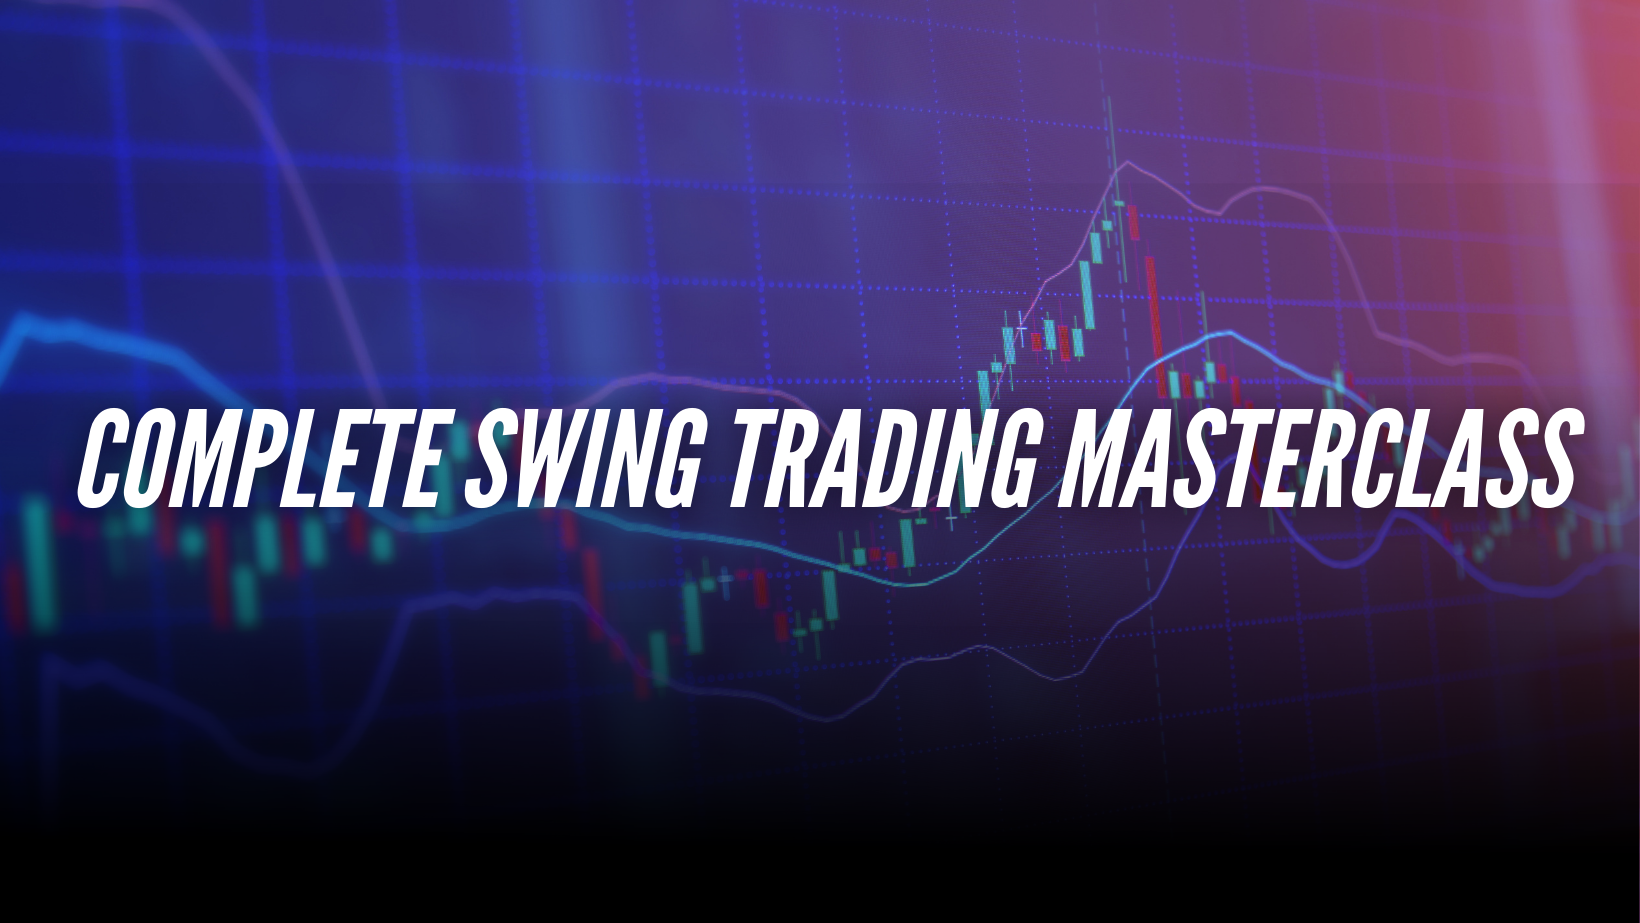 The Complete Swing Trading Masterclass